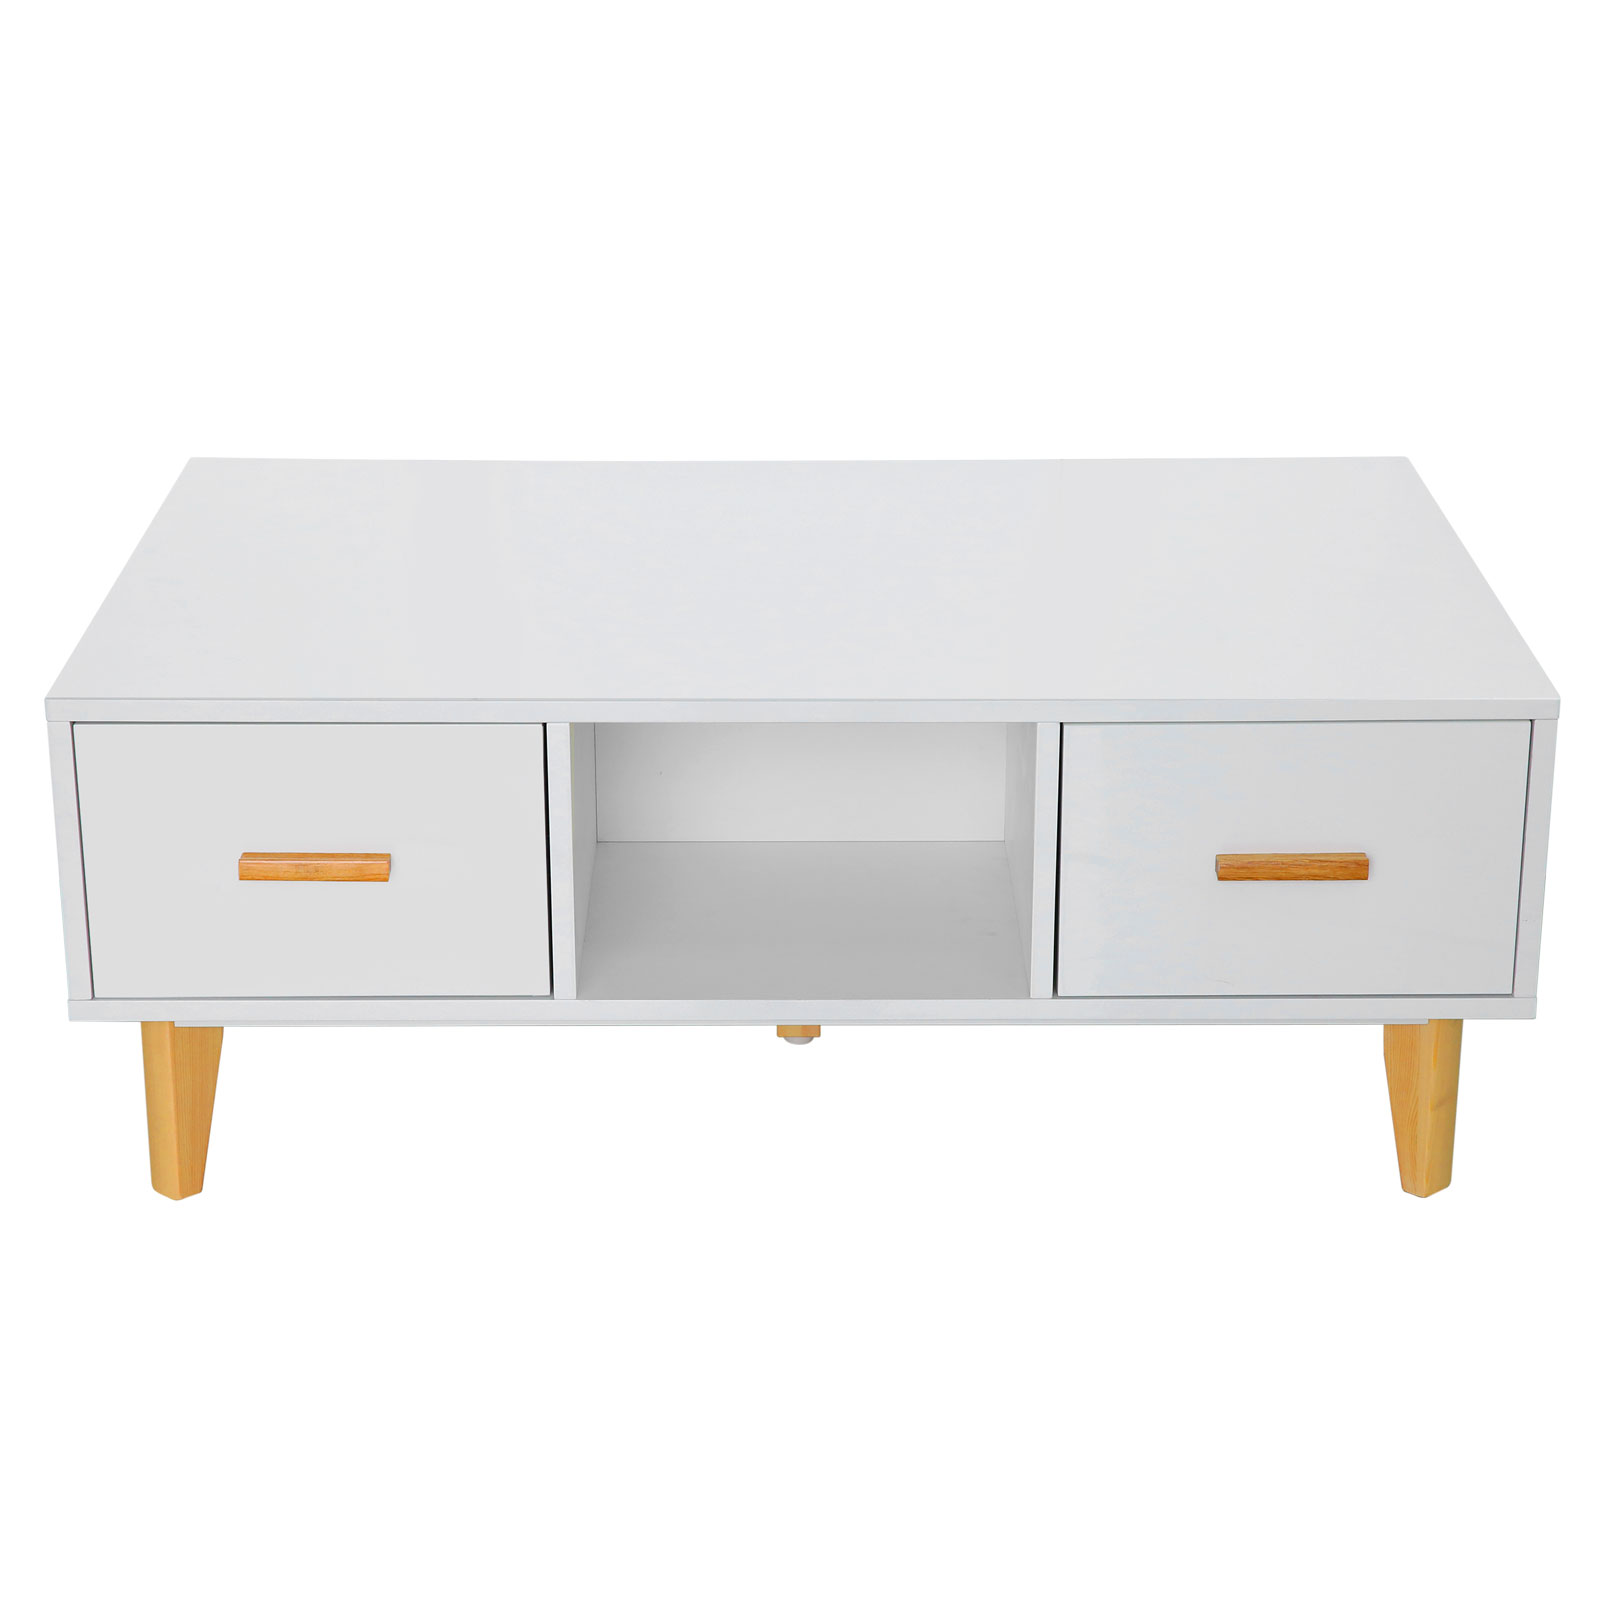 High Gloss Coffee Table Storage Drawer Rectangle Living Room Furniture Mdf Wood Ebay